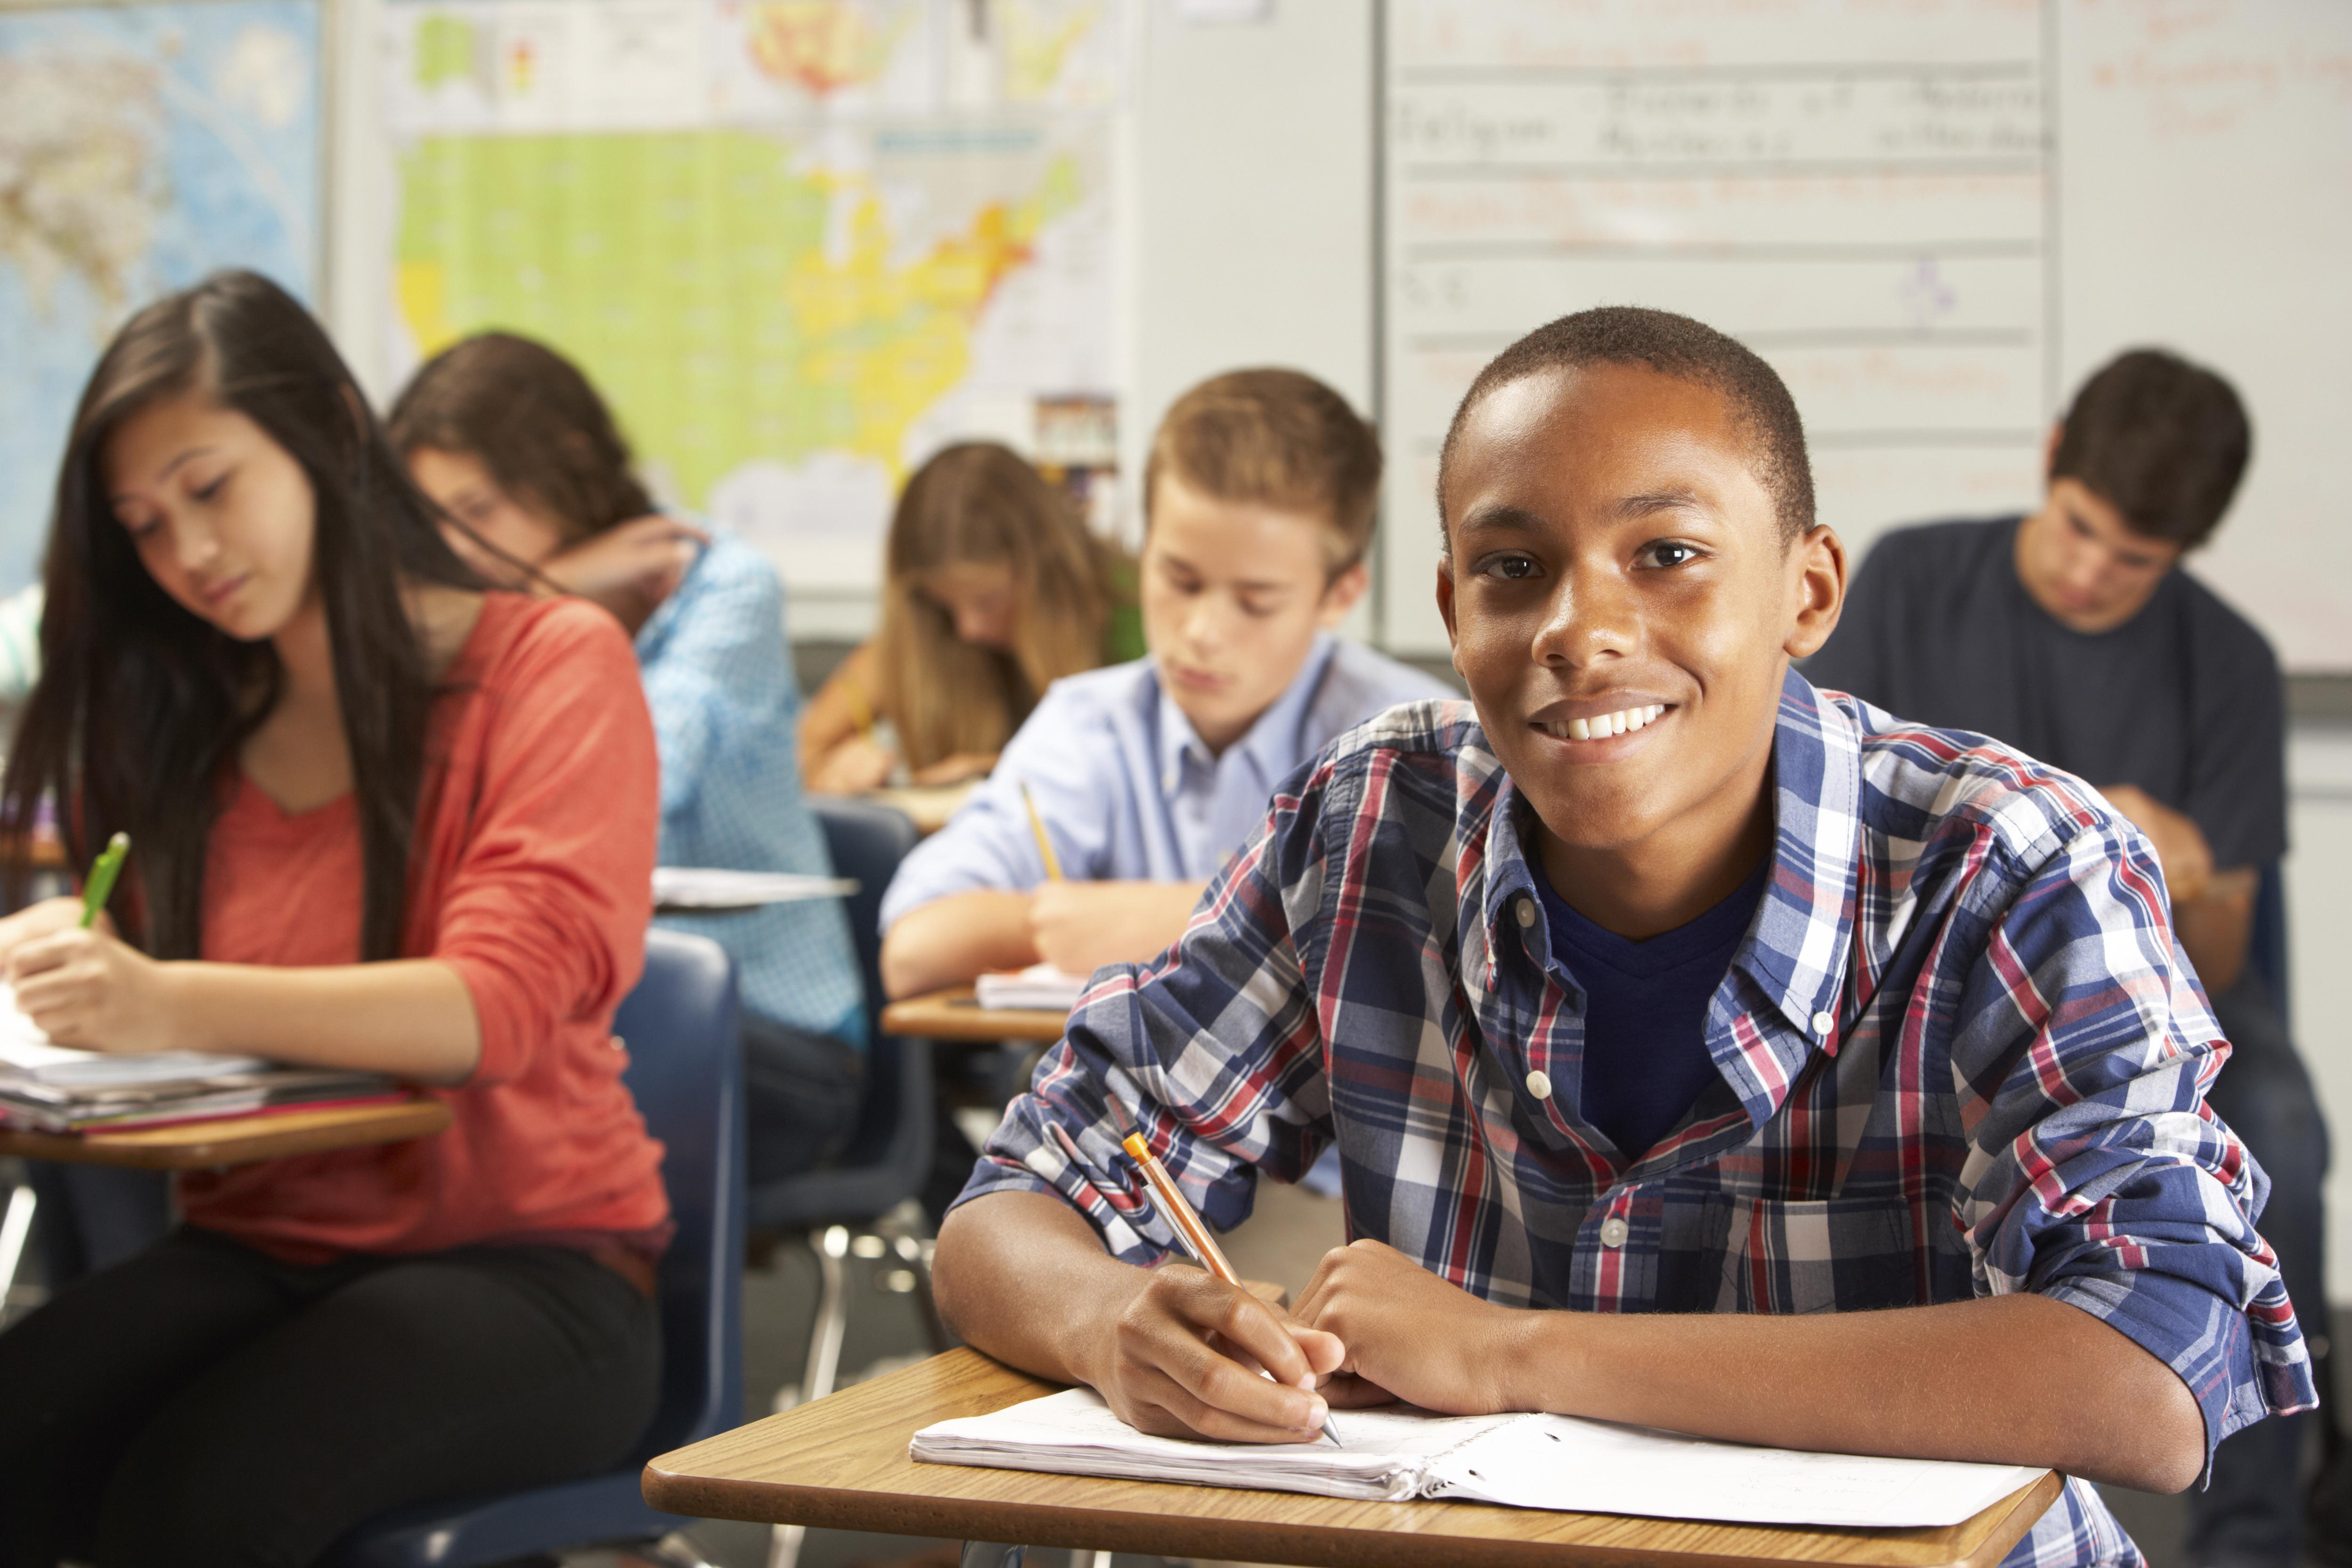 Portrait Of Male Pupil Studying At Desk In Classroom